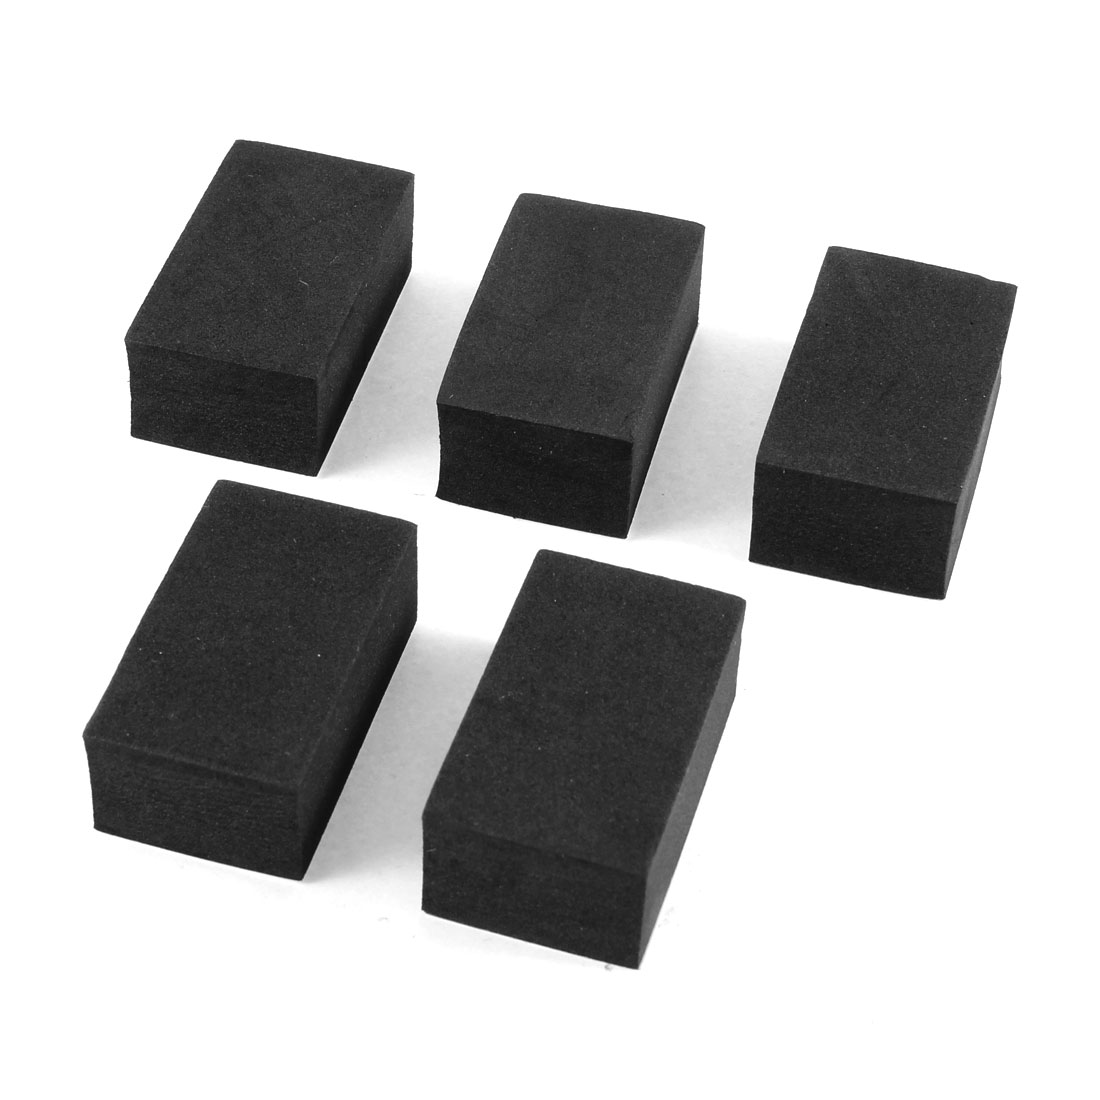 5 Pcs Foam Self Adhesive Car Auto Door Edge Guard Protectors Ornament Black